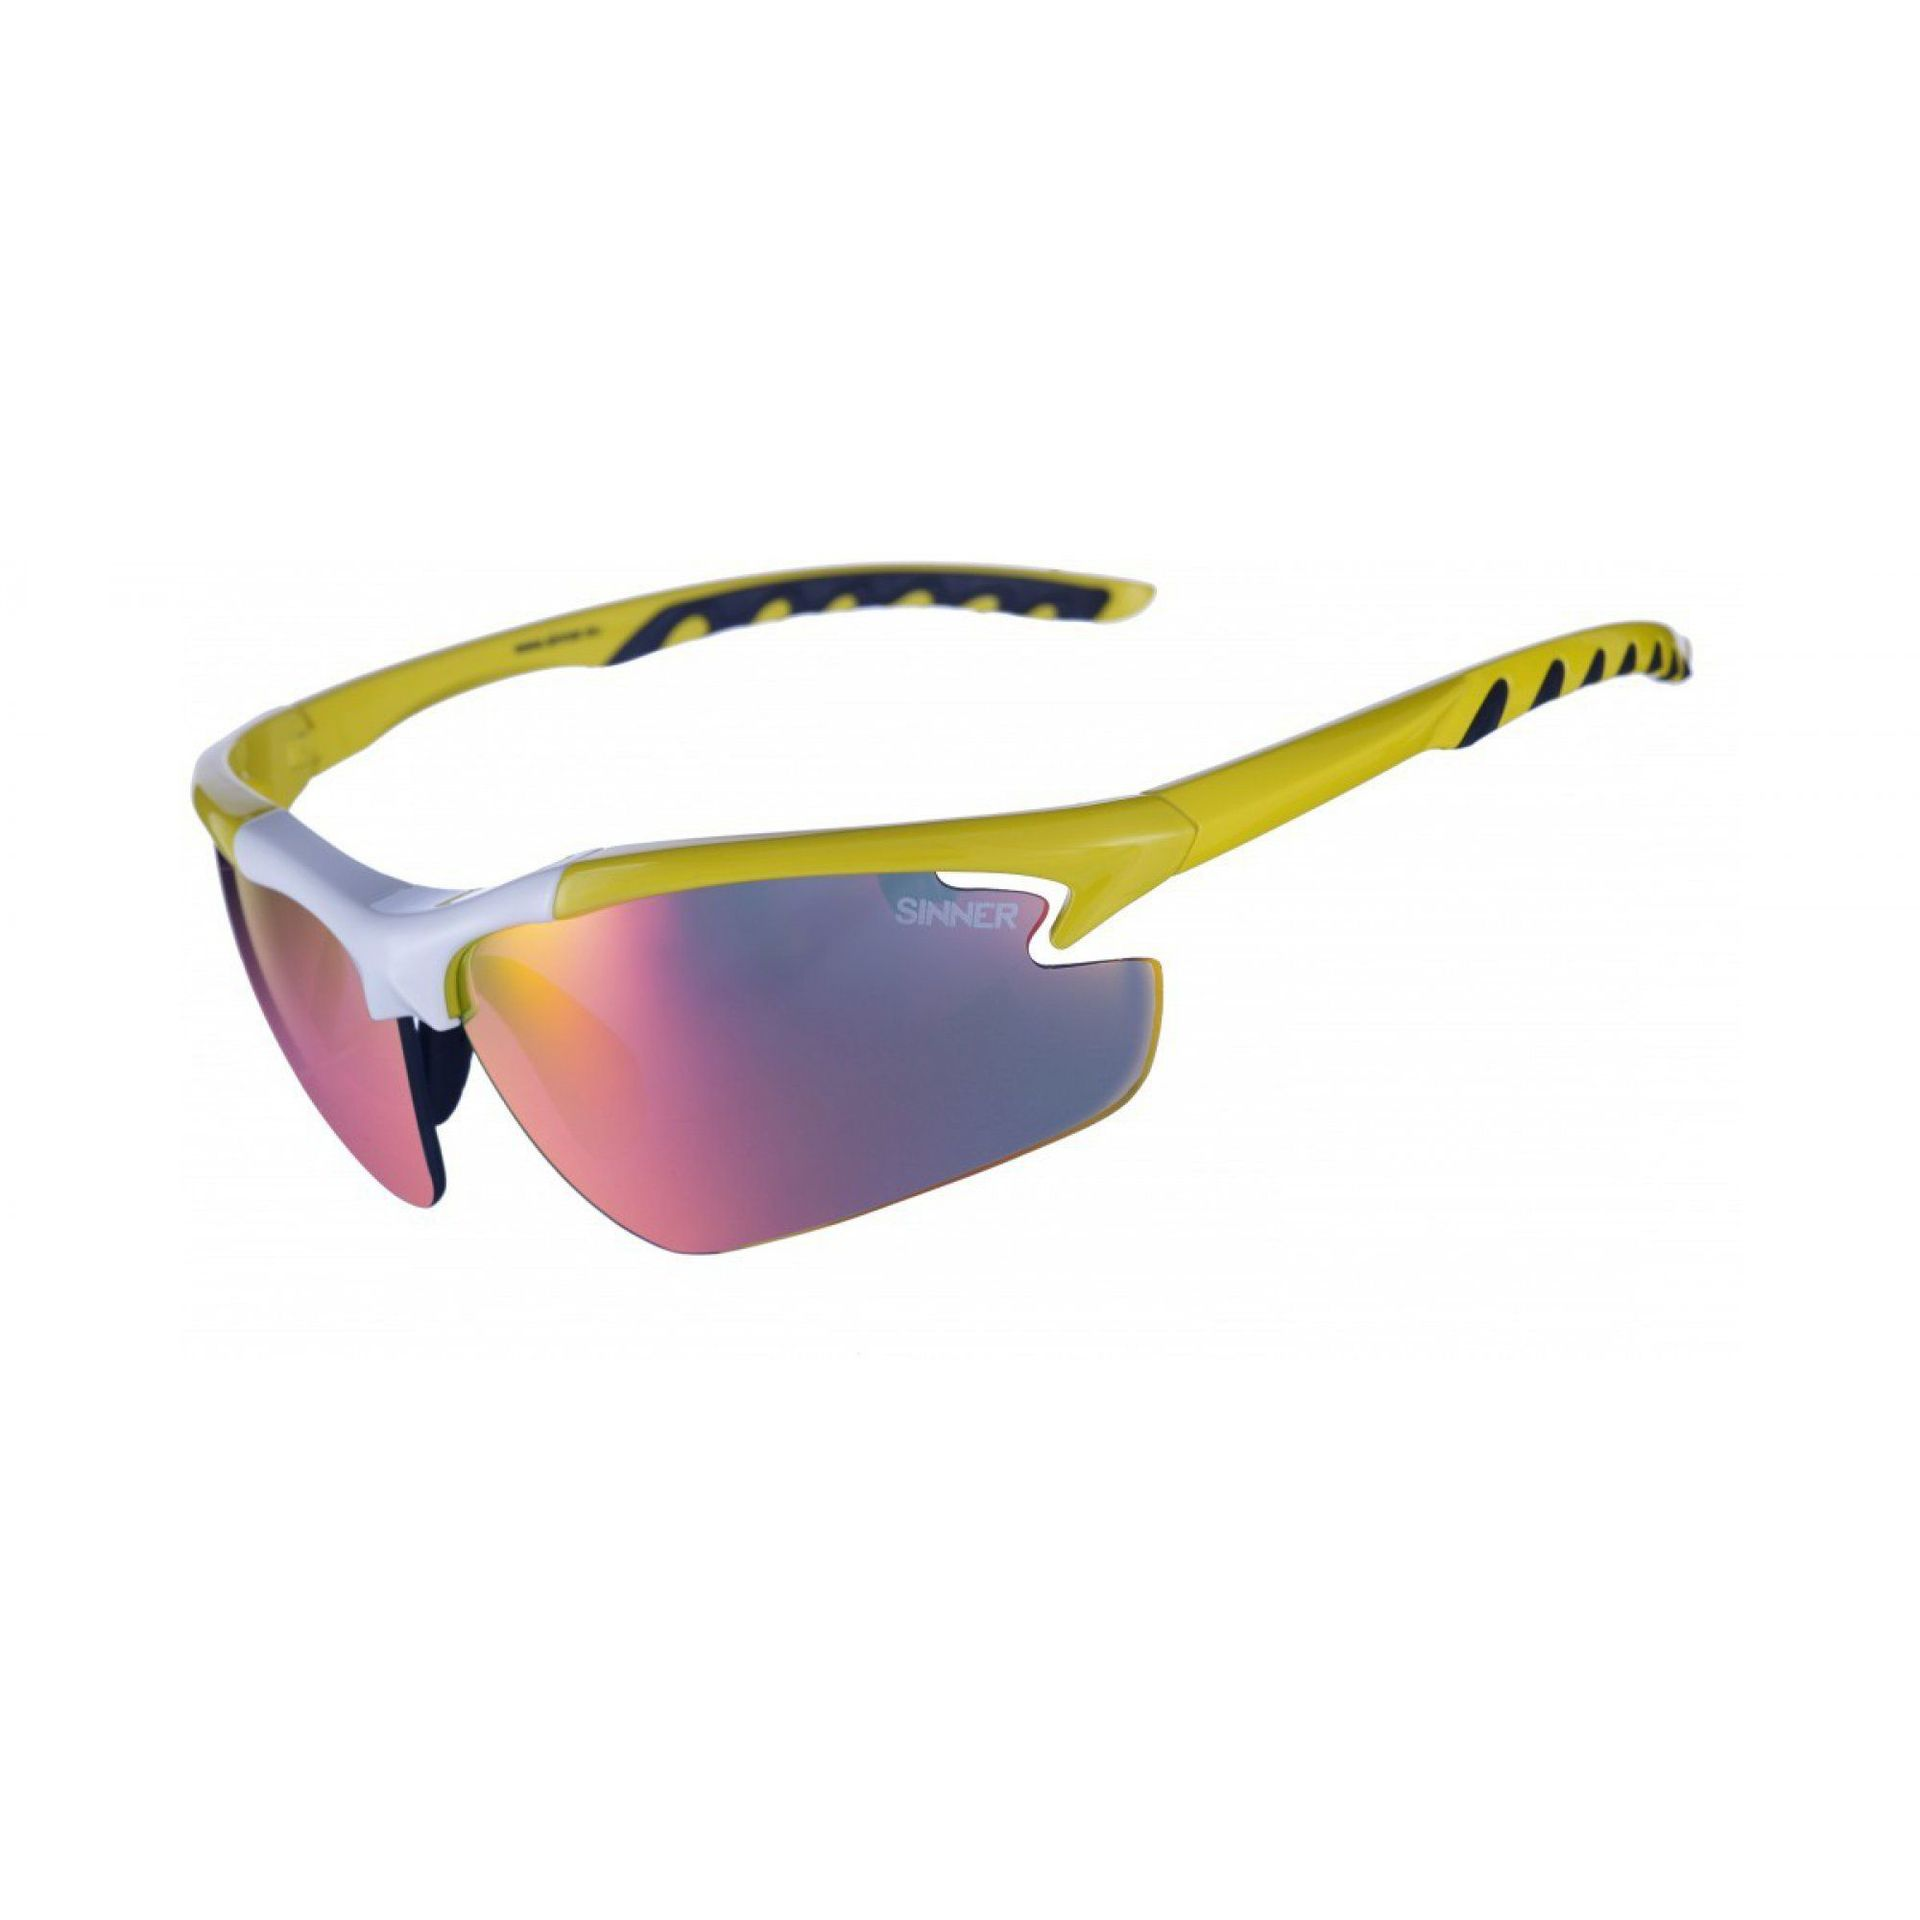 OKULARY SINNER FIREBUG YELLOW